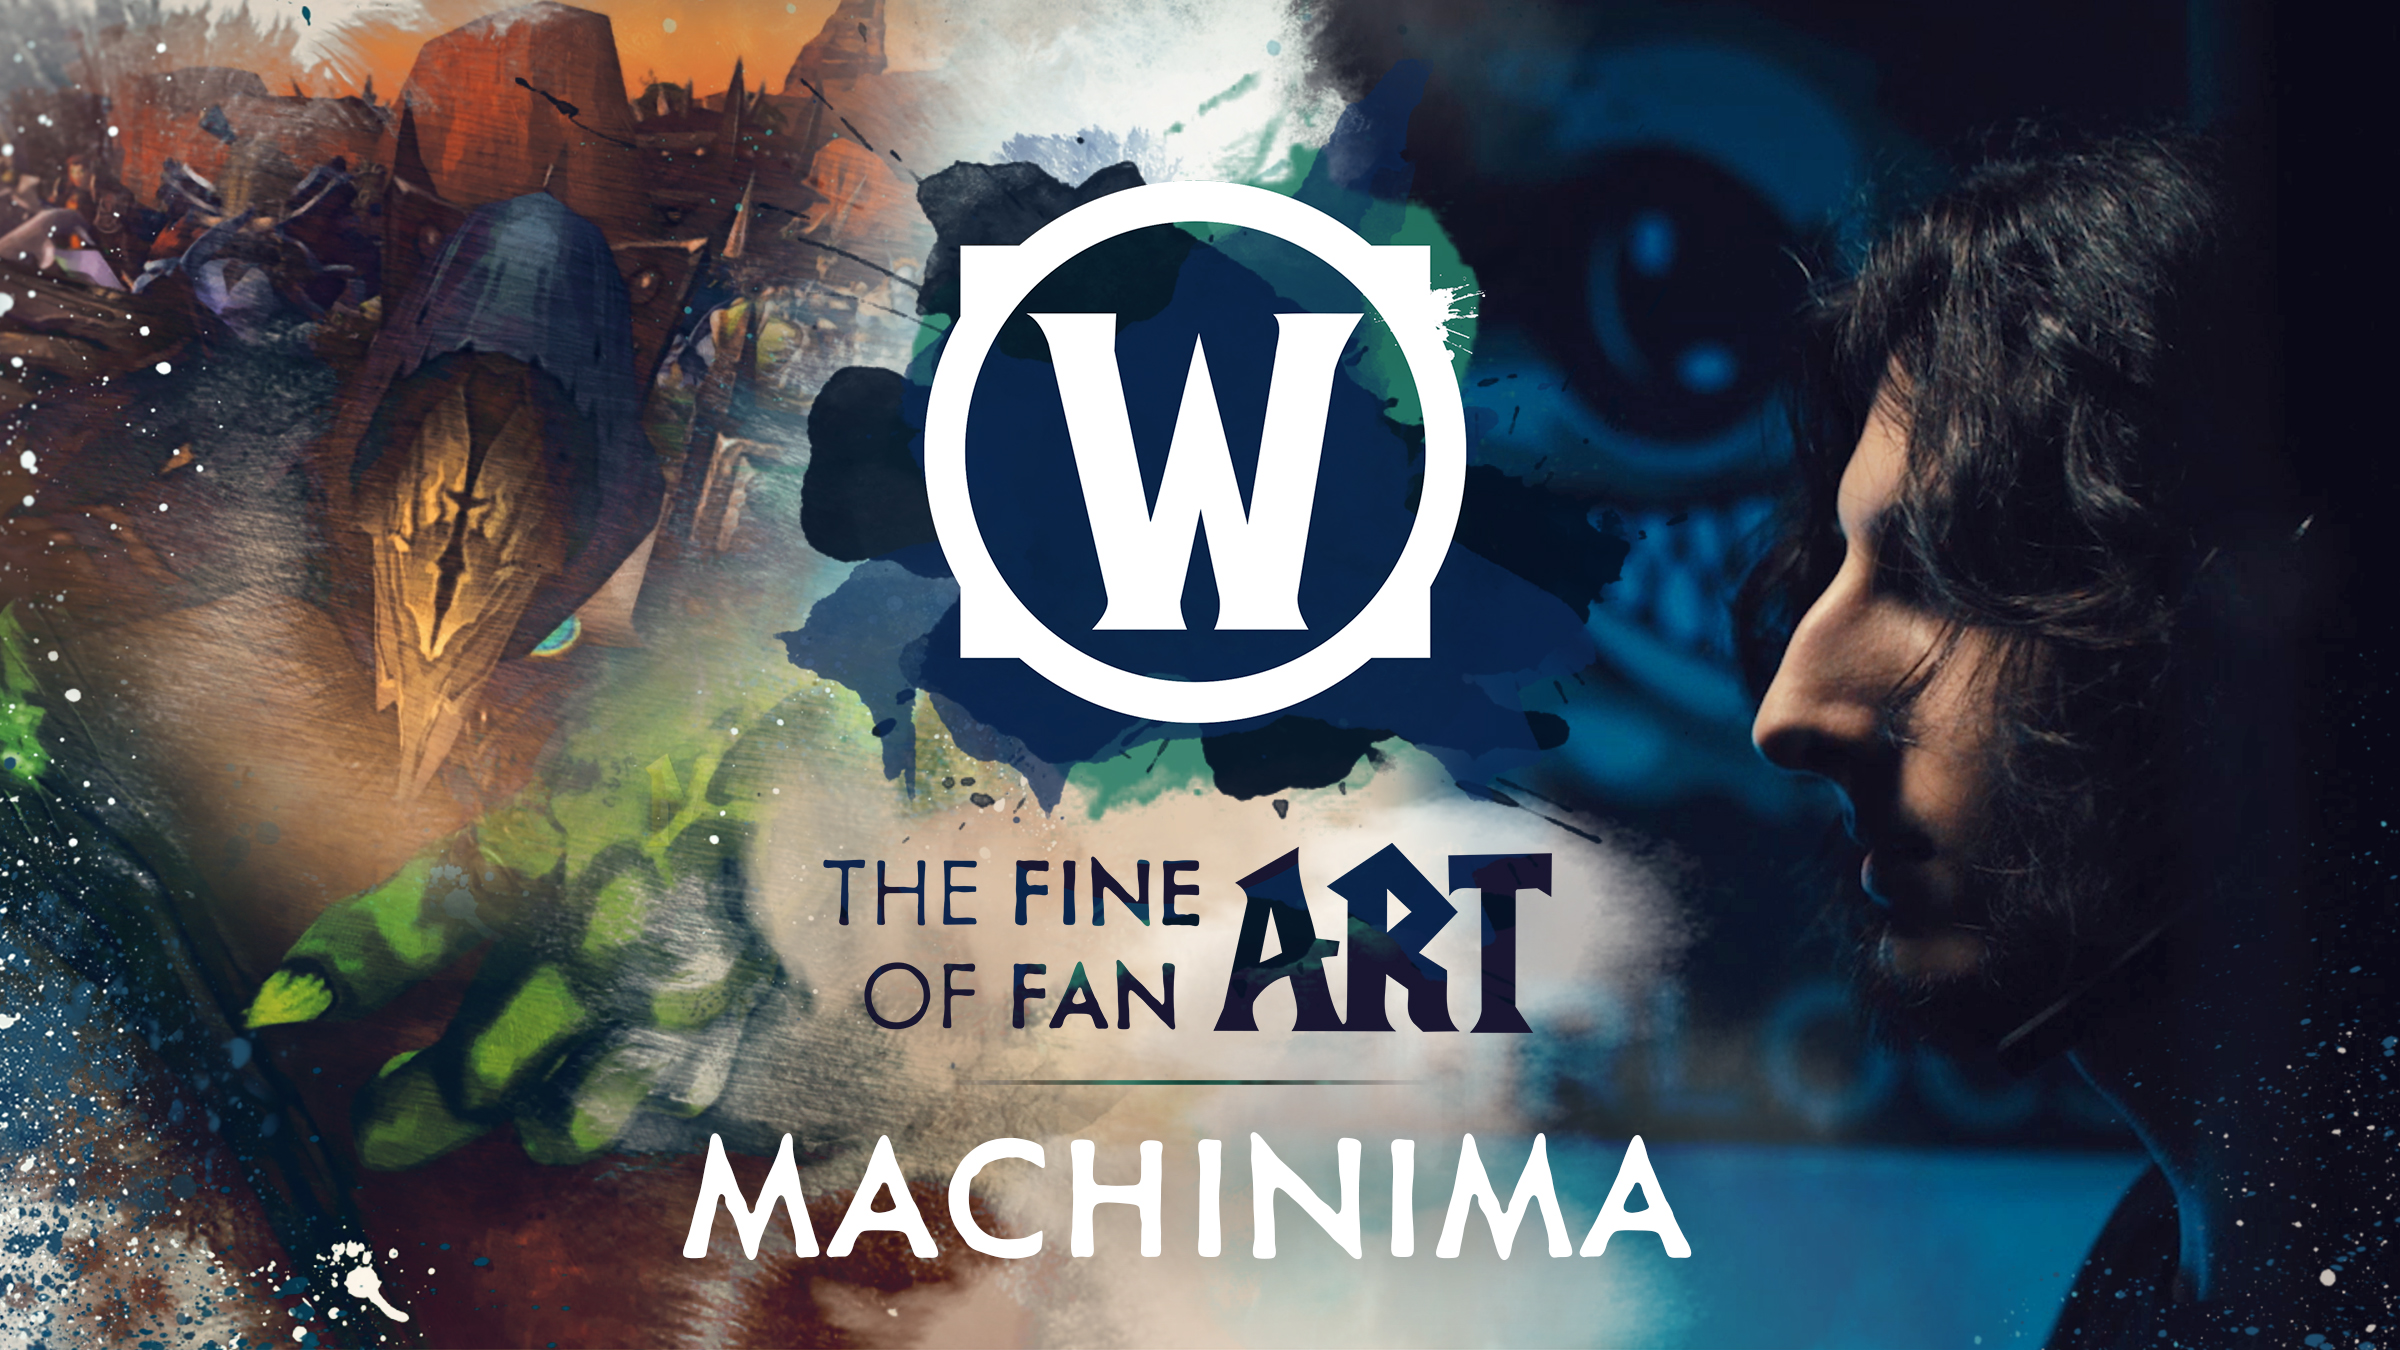 The Fine Art of Fan Art: Episode 3 - Schöpfer von Machinima